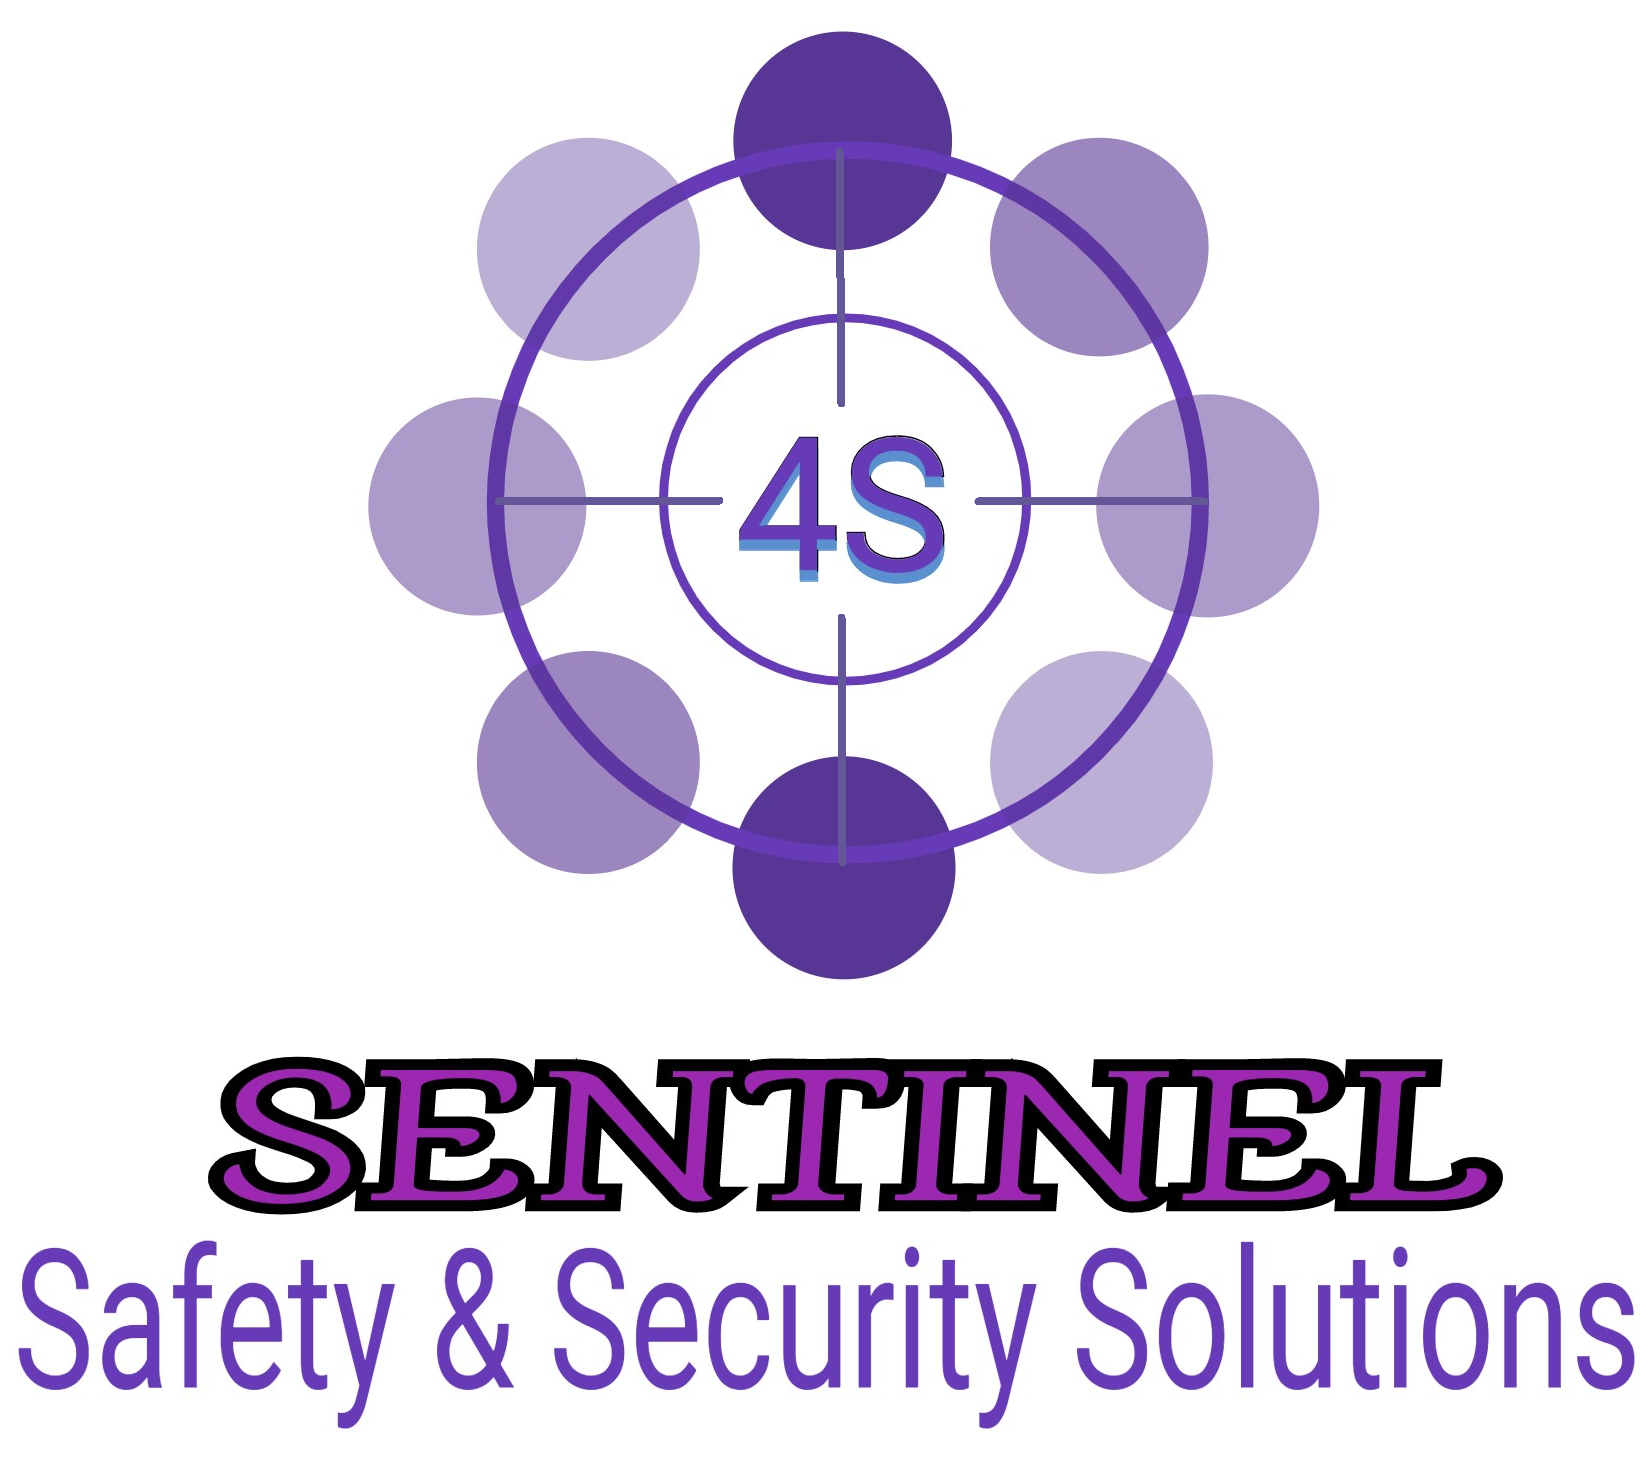 Sentinel Safety & Security Solutions ®